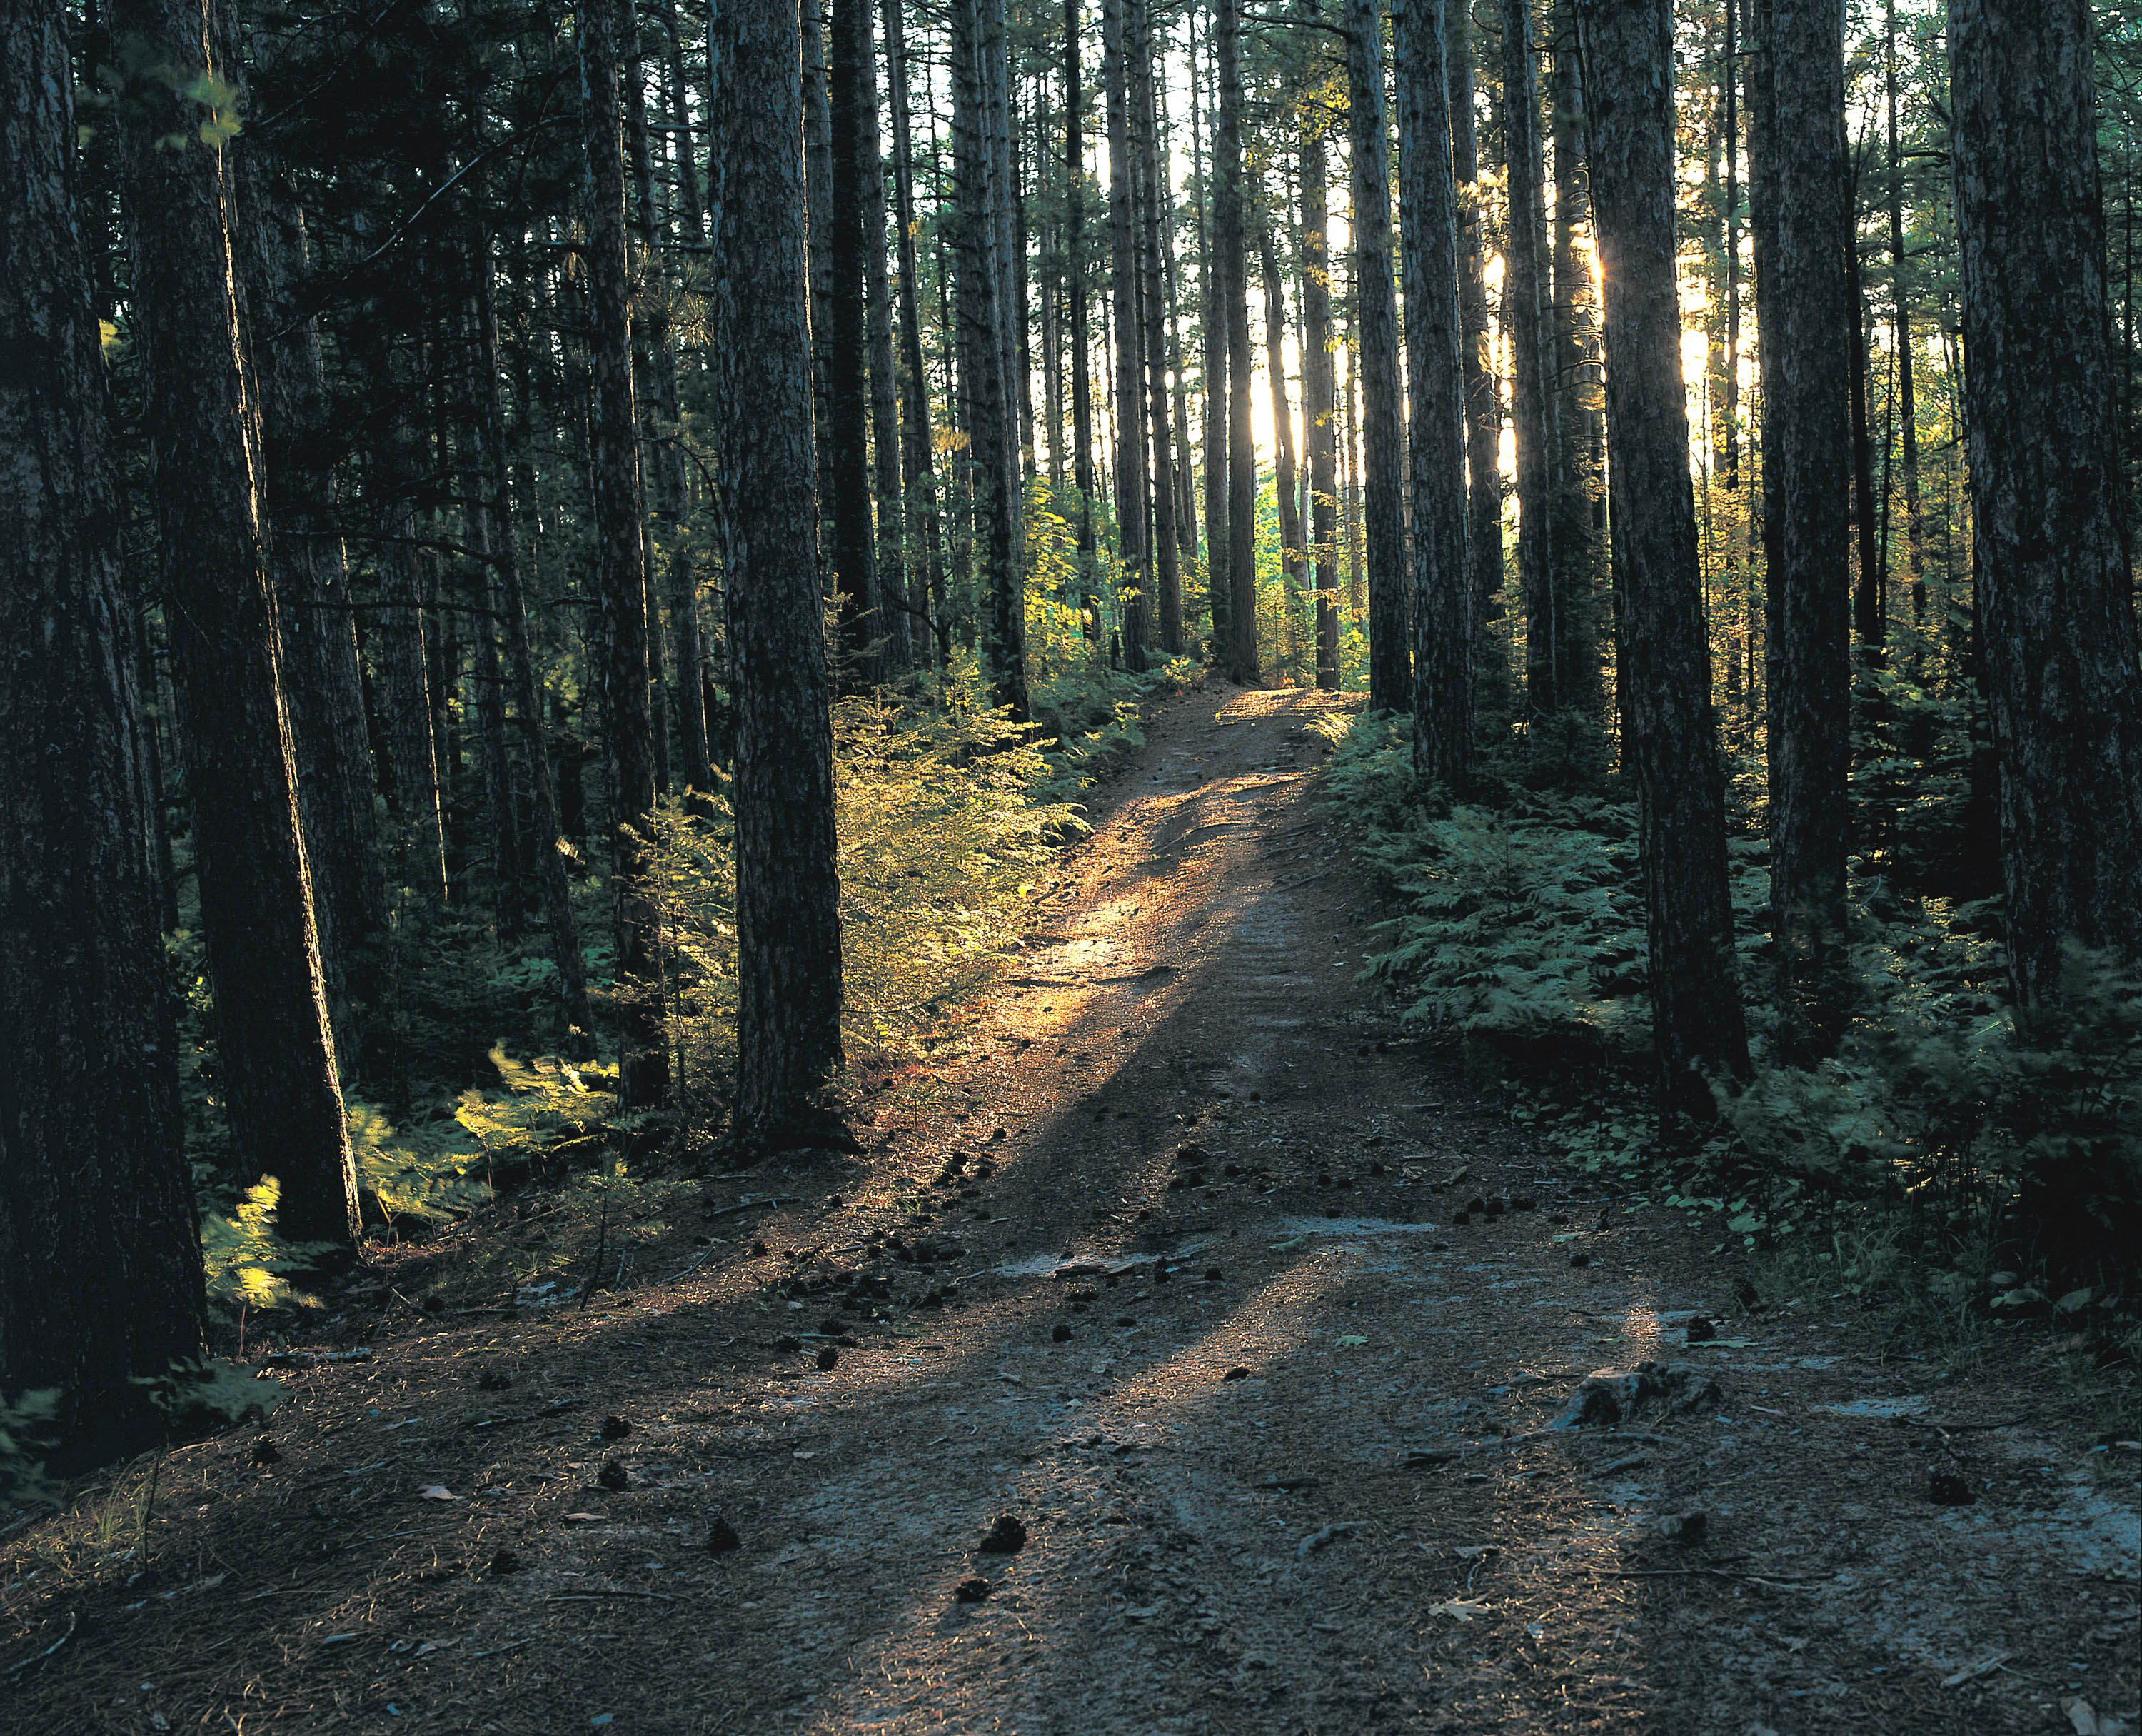 The light peeks through the trees and lights a dirt trail.